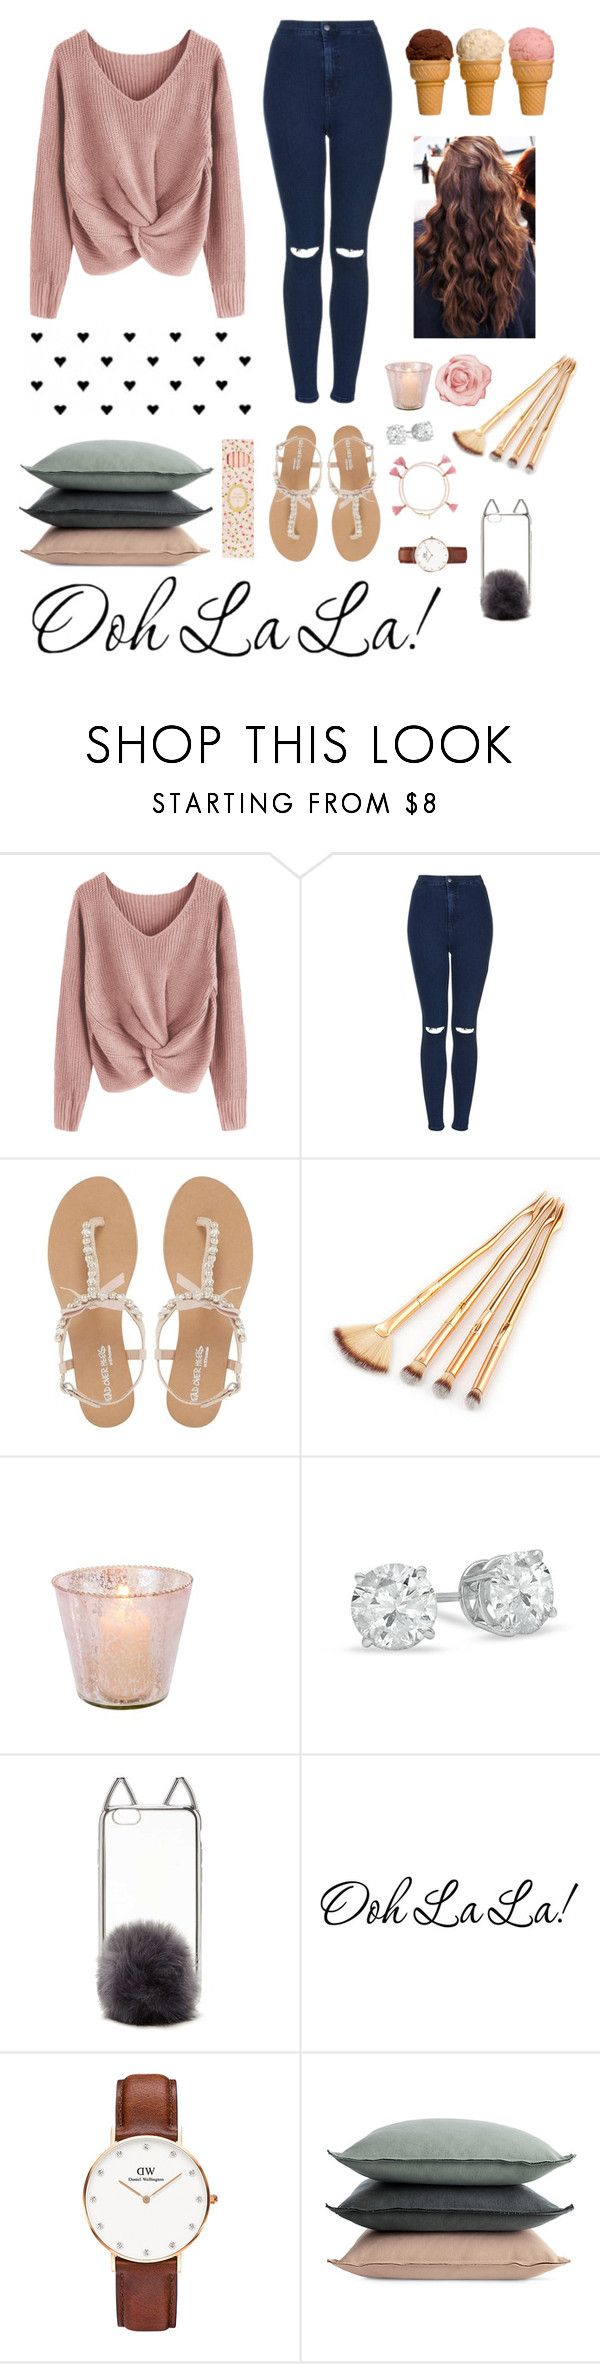 """""""It's my birthday today 🙈👅"""" by ananyasharmad85 ❤ liked on Polyvore featuring Topshop, Head Over Heels by Dune, Forever 21, Daniel Wellington, Design Within Reach and Ladurée"""